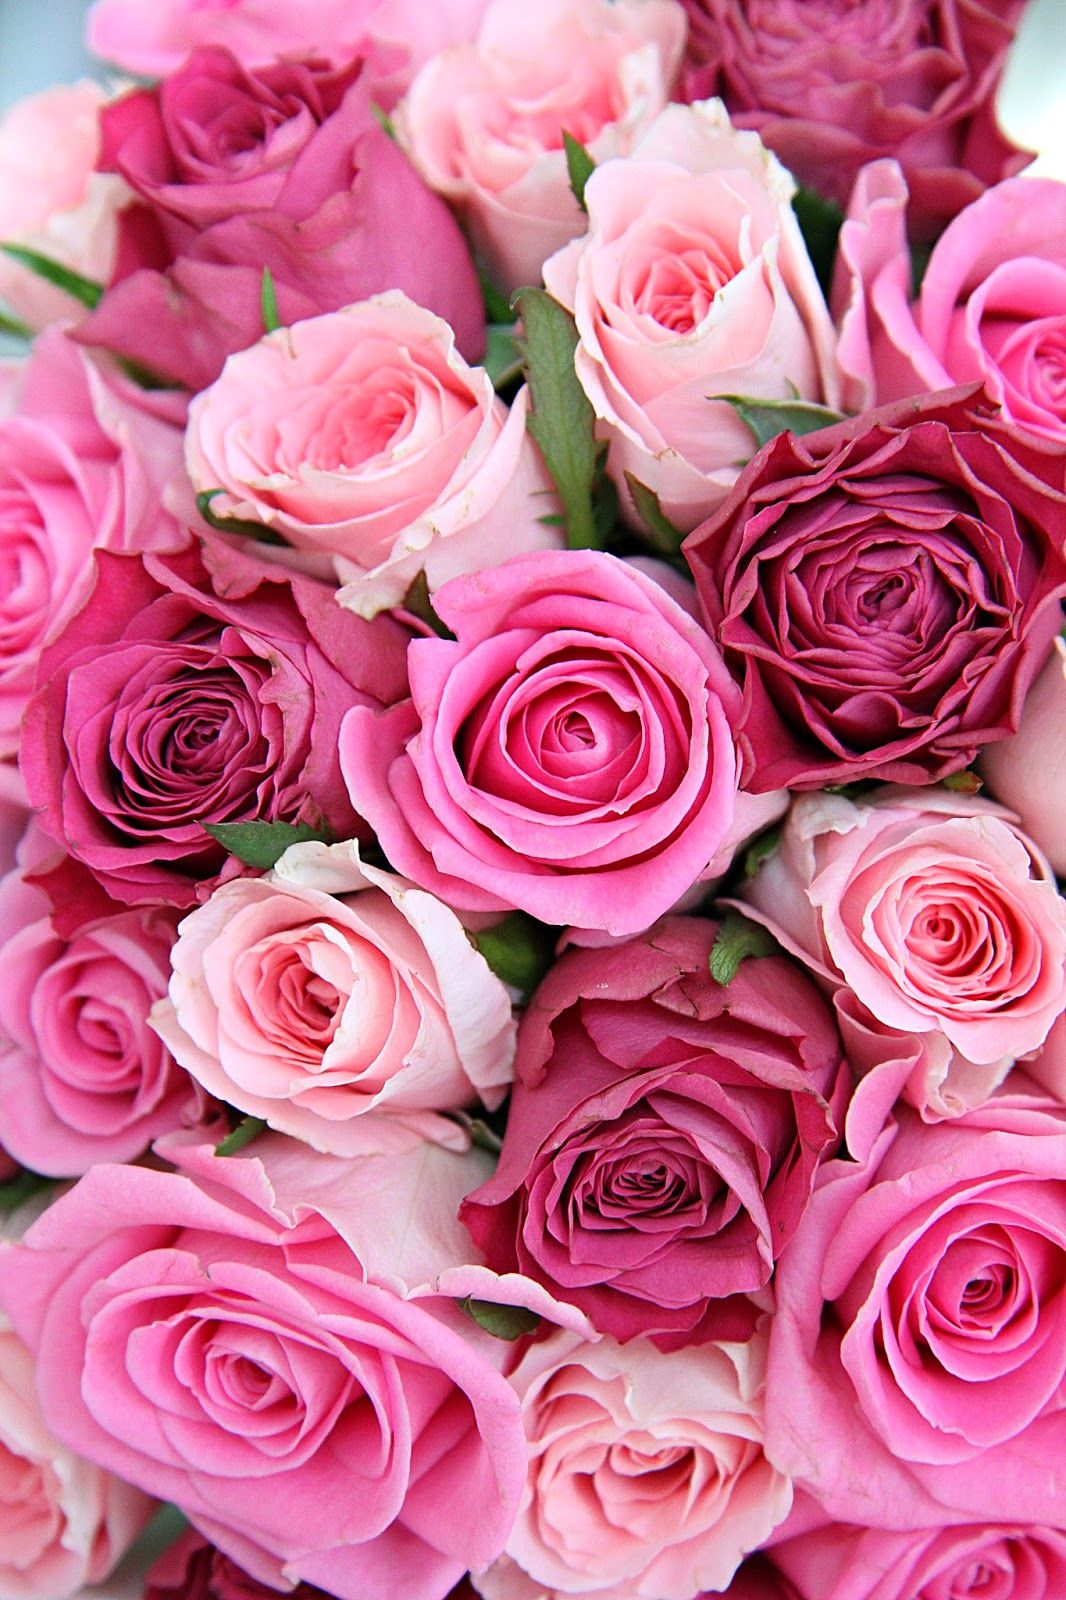 Stjrnor Champagne Flowers Pinterest Champagne Flowers And